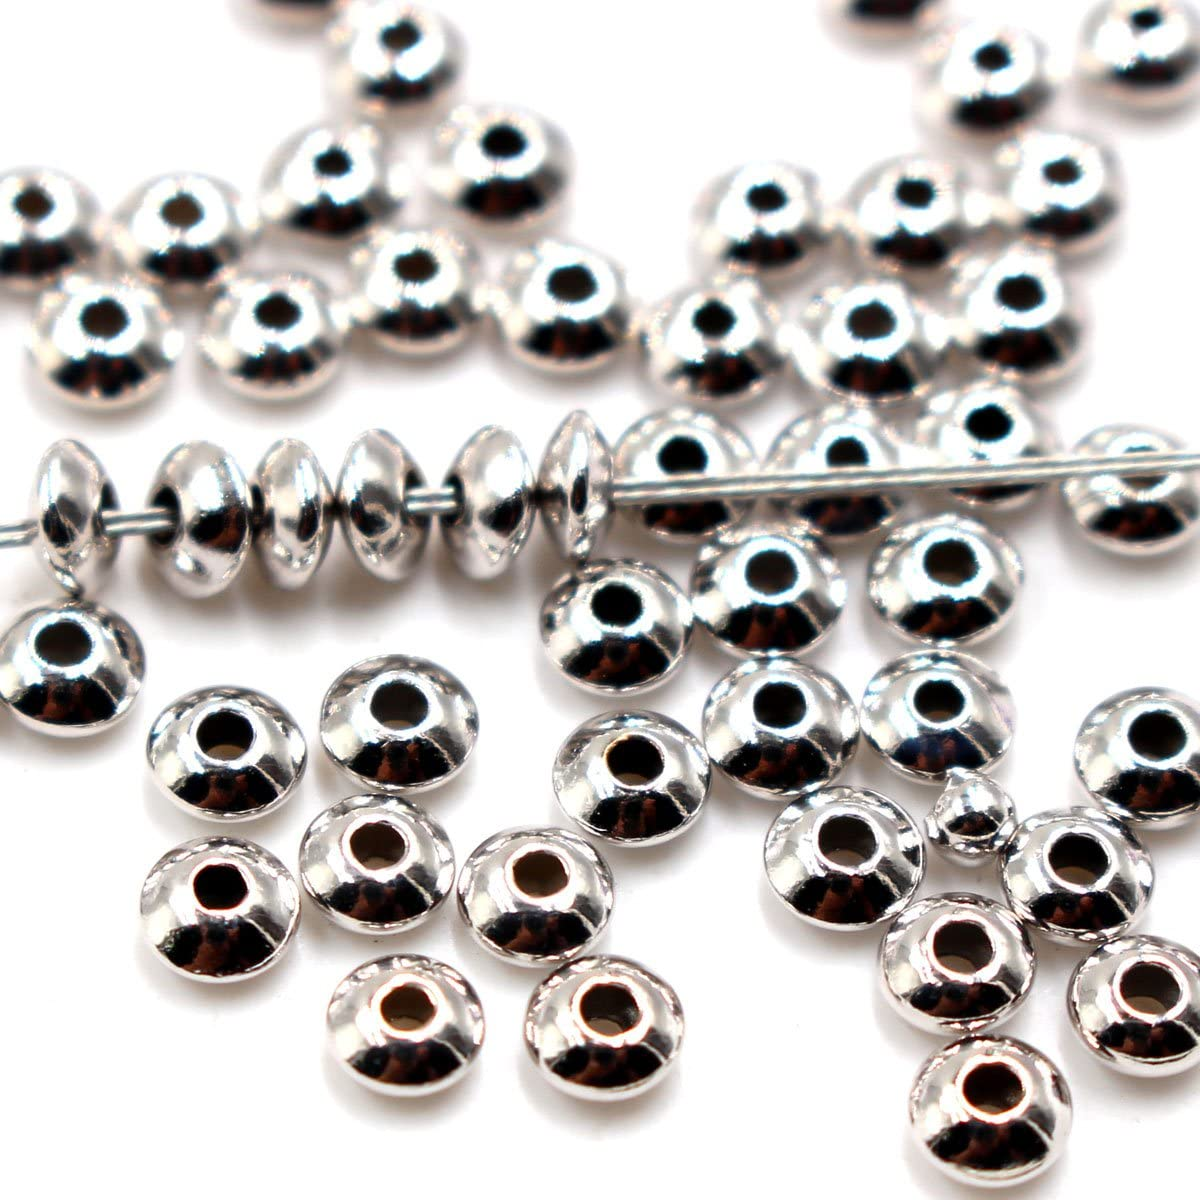 100Pcs Genuine 925 Sterling Silver Round Ball Beads for Jewelry Making Findings